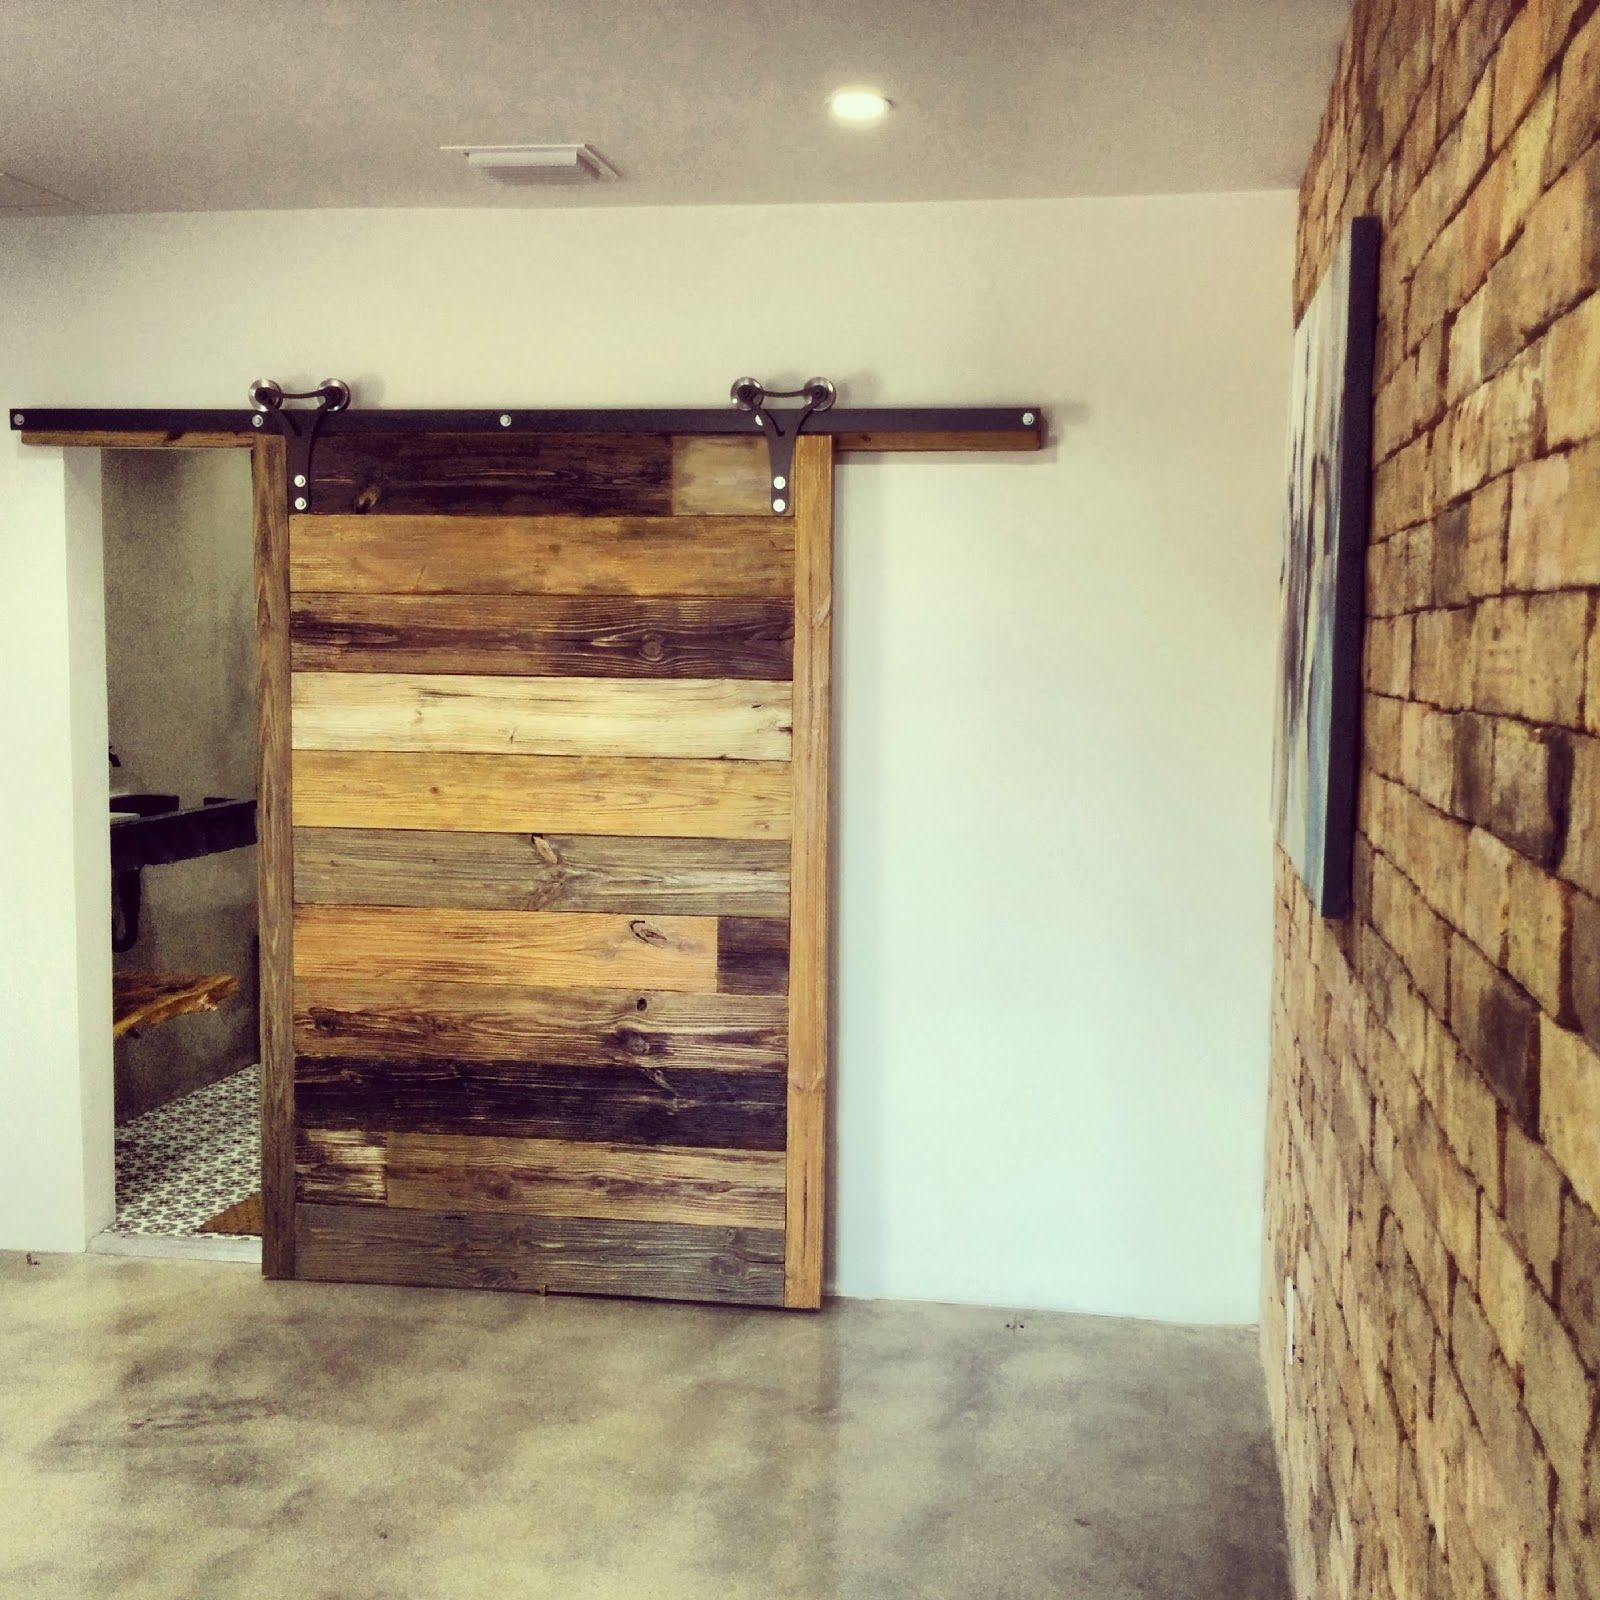 Painted Barn Doors Amazing Large Single Sliding Barn Door With Brick Wall